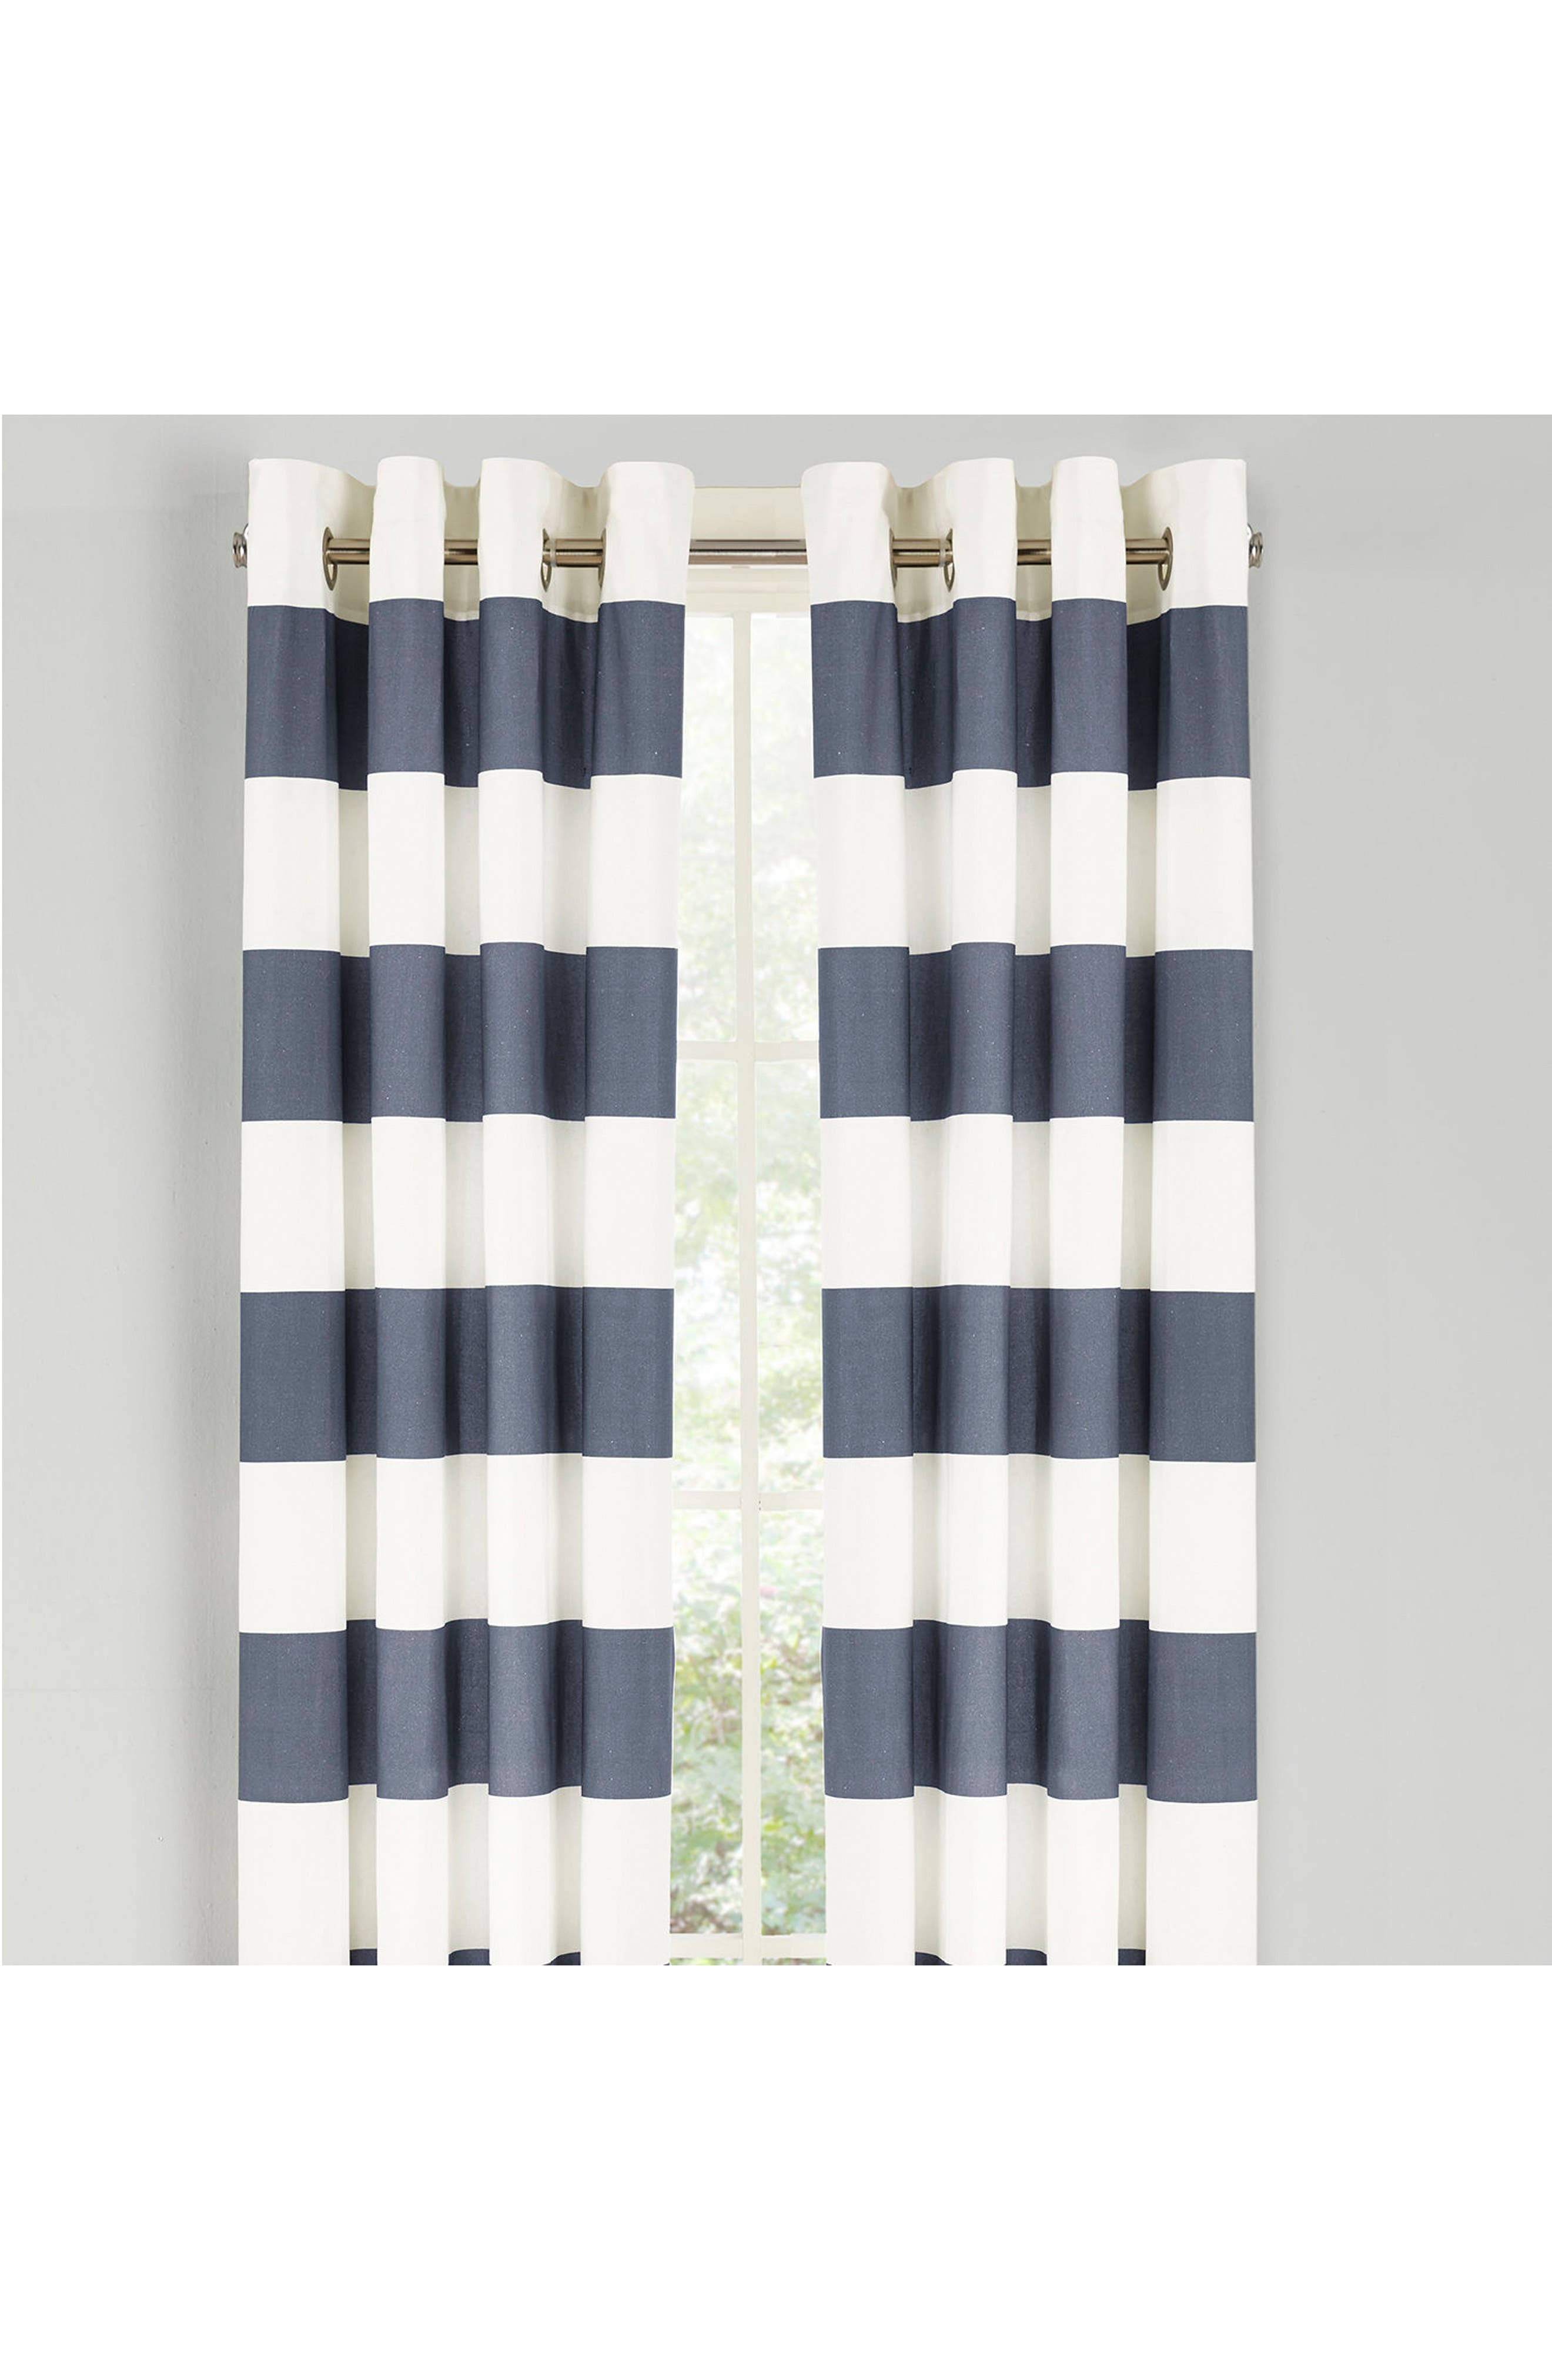 white target tier treatments awesome black design plaid and trends drapes kitchen window sliding striped valance ideas gingham patterns red pictures touch curtains with for va desirable full size trim including furniture photos of